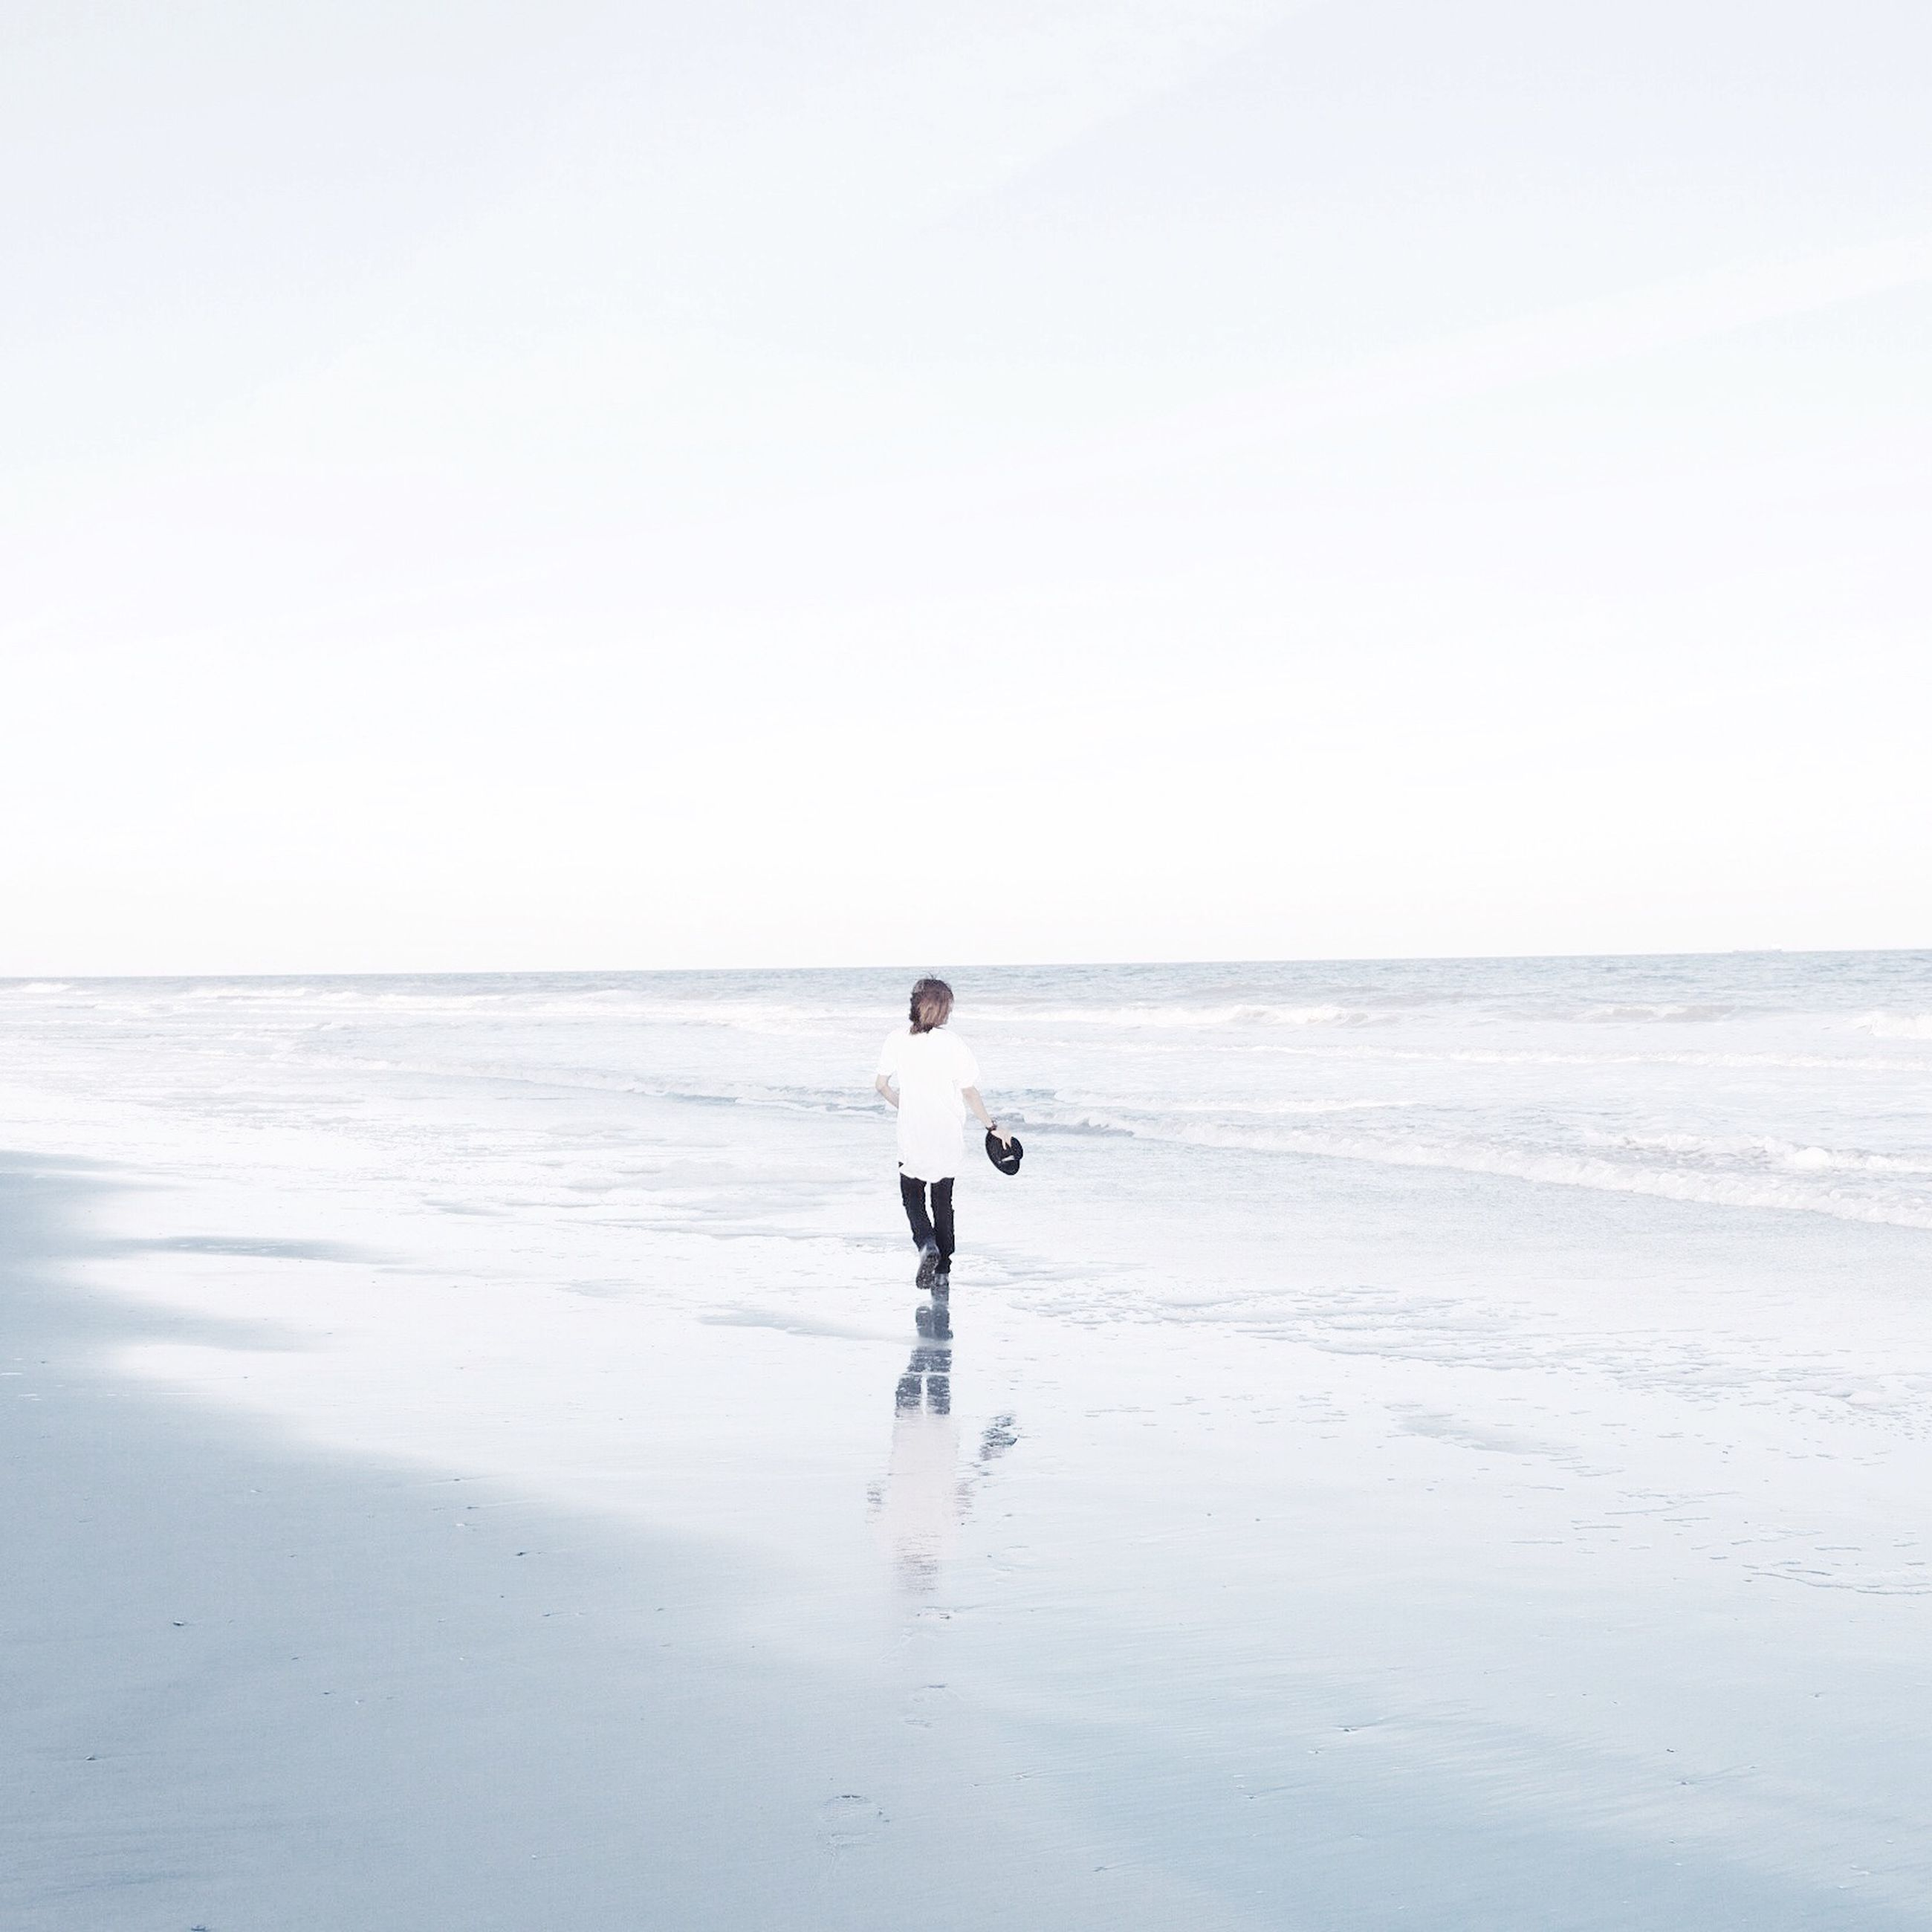 beach, sea, horizon over water, water, shore, full length, sand, leisure activity, clear sky, walking, lifestyles, rear view, copy space, tranquil scene, standing, tranquility, scenics, wave